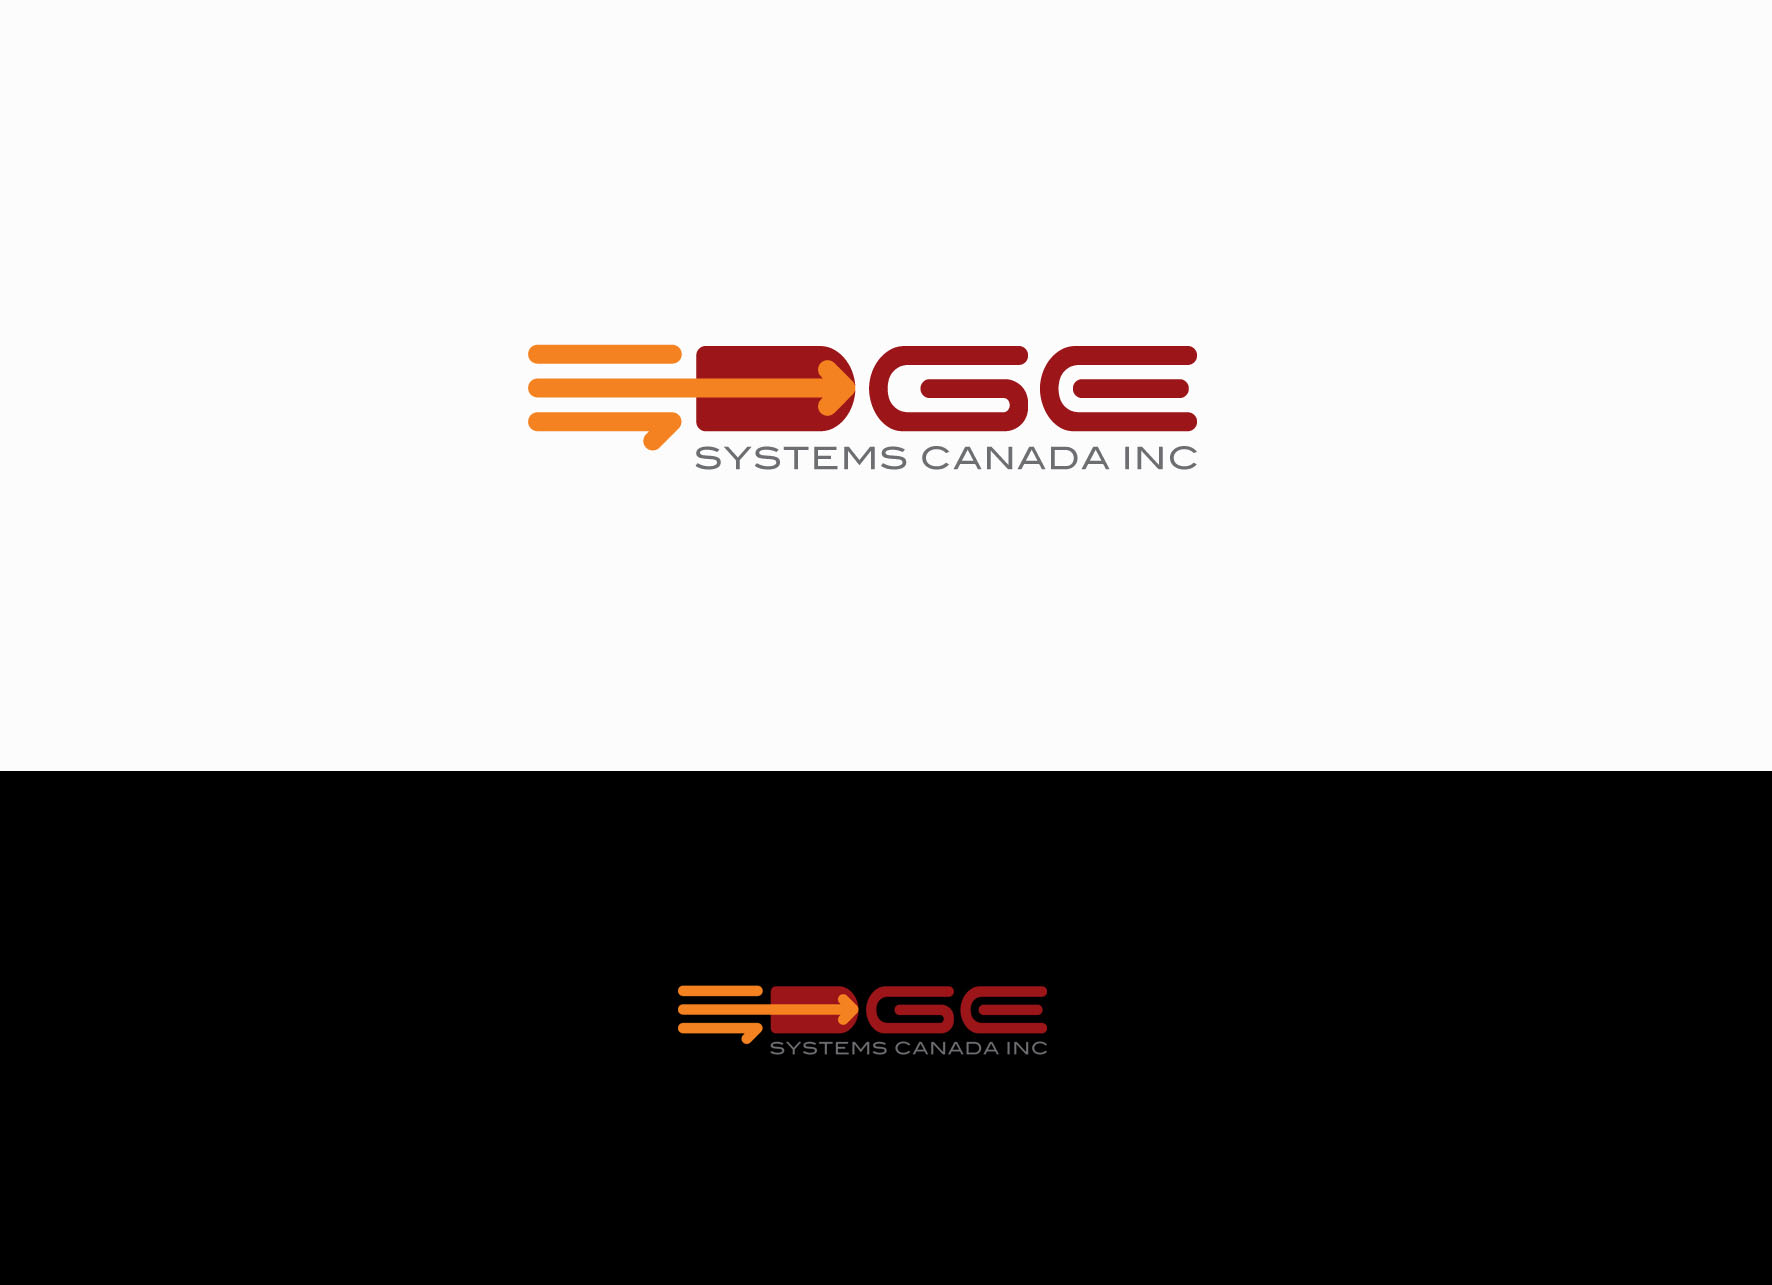 Logo Design by tanganpanas - Entry No. 33 in the Logo Design Contest New Logo Design for Edge Systems Canada Inc.